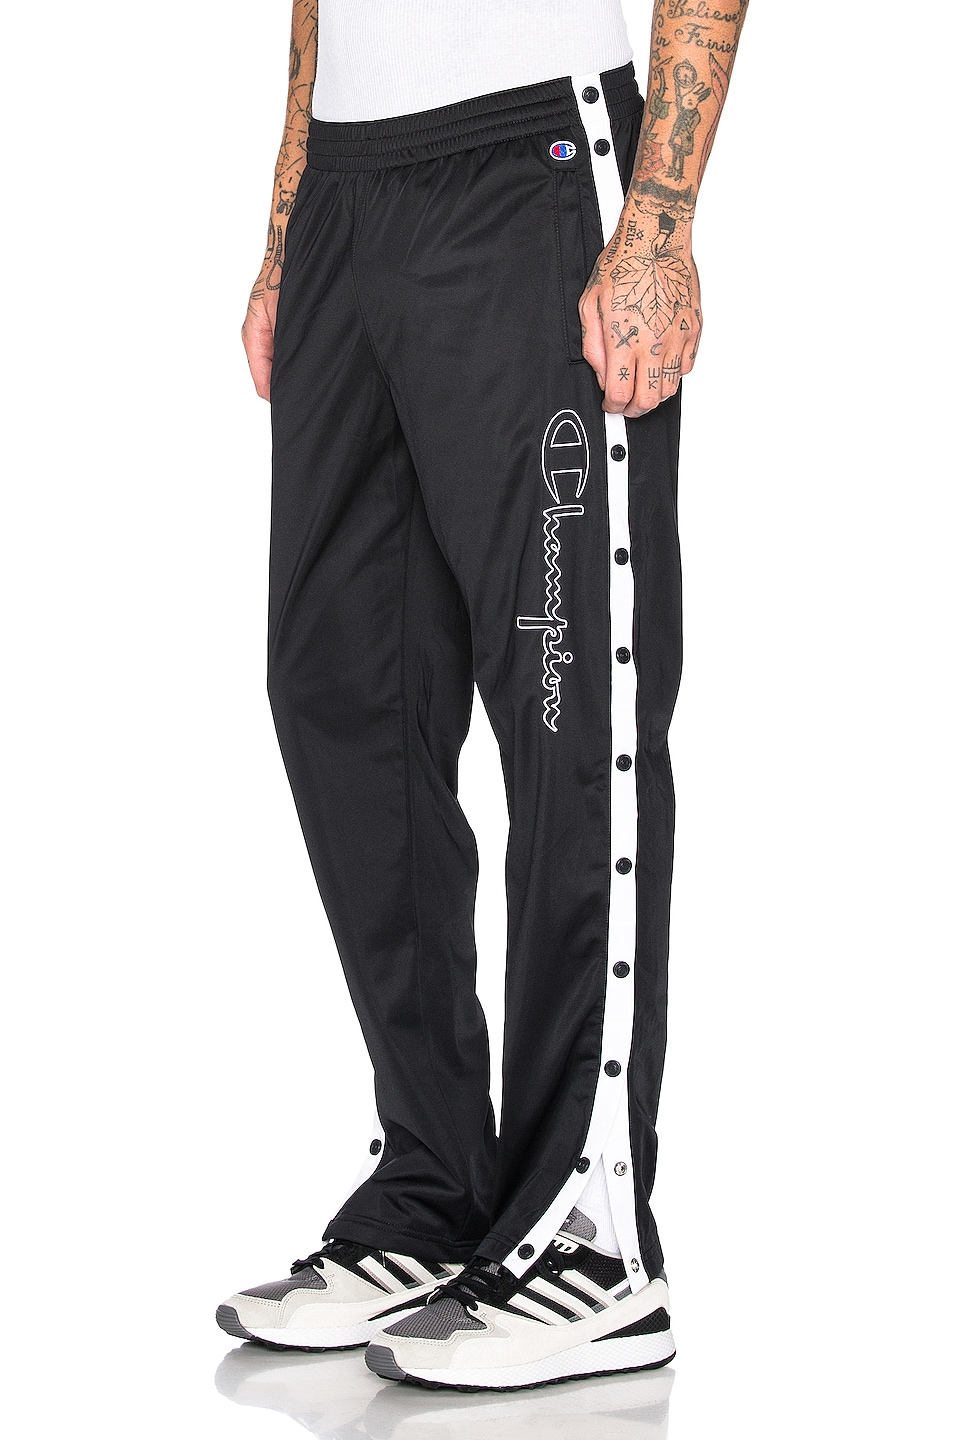 Image 1 of Champion Reverse Weave Champion Pants in Black & White